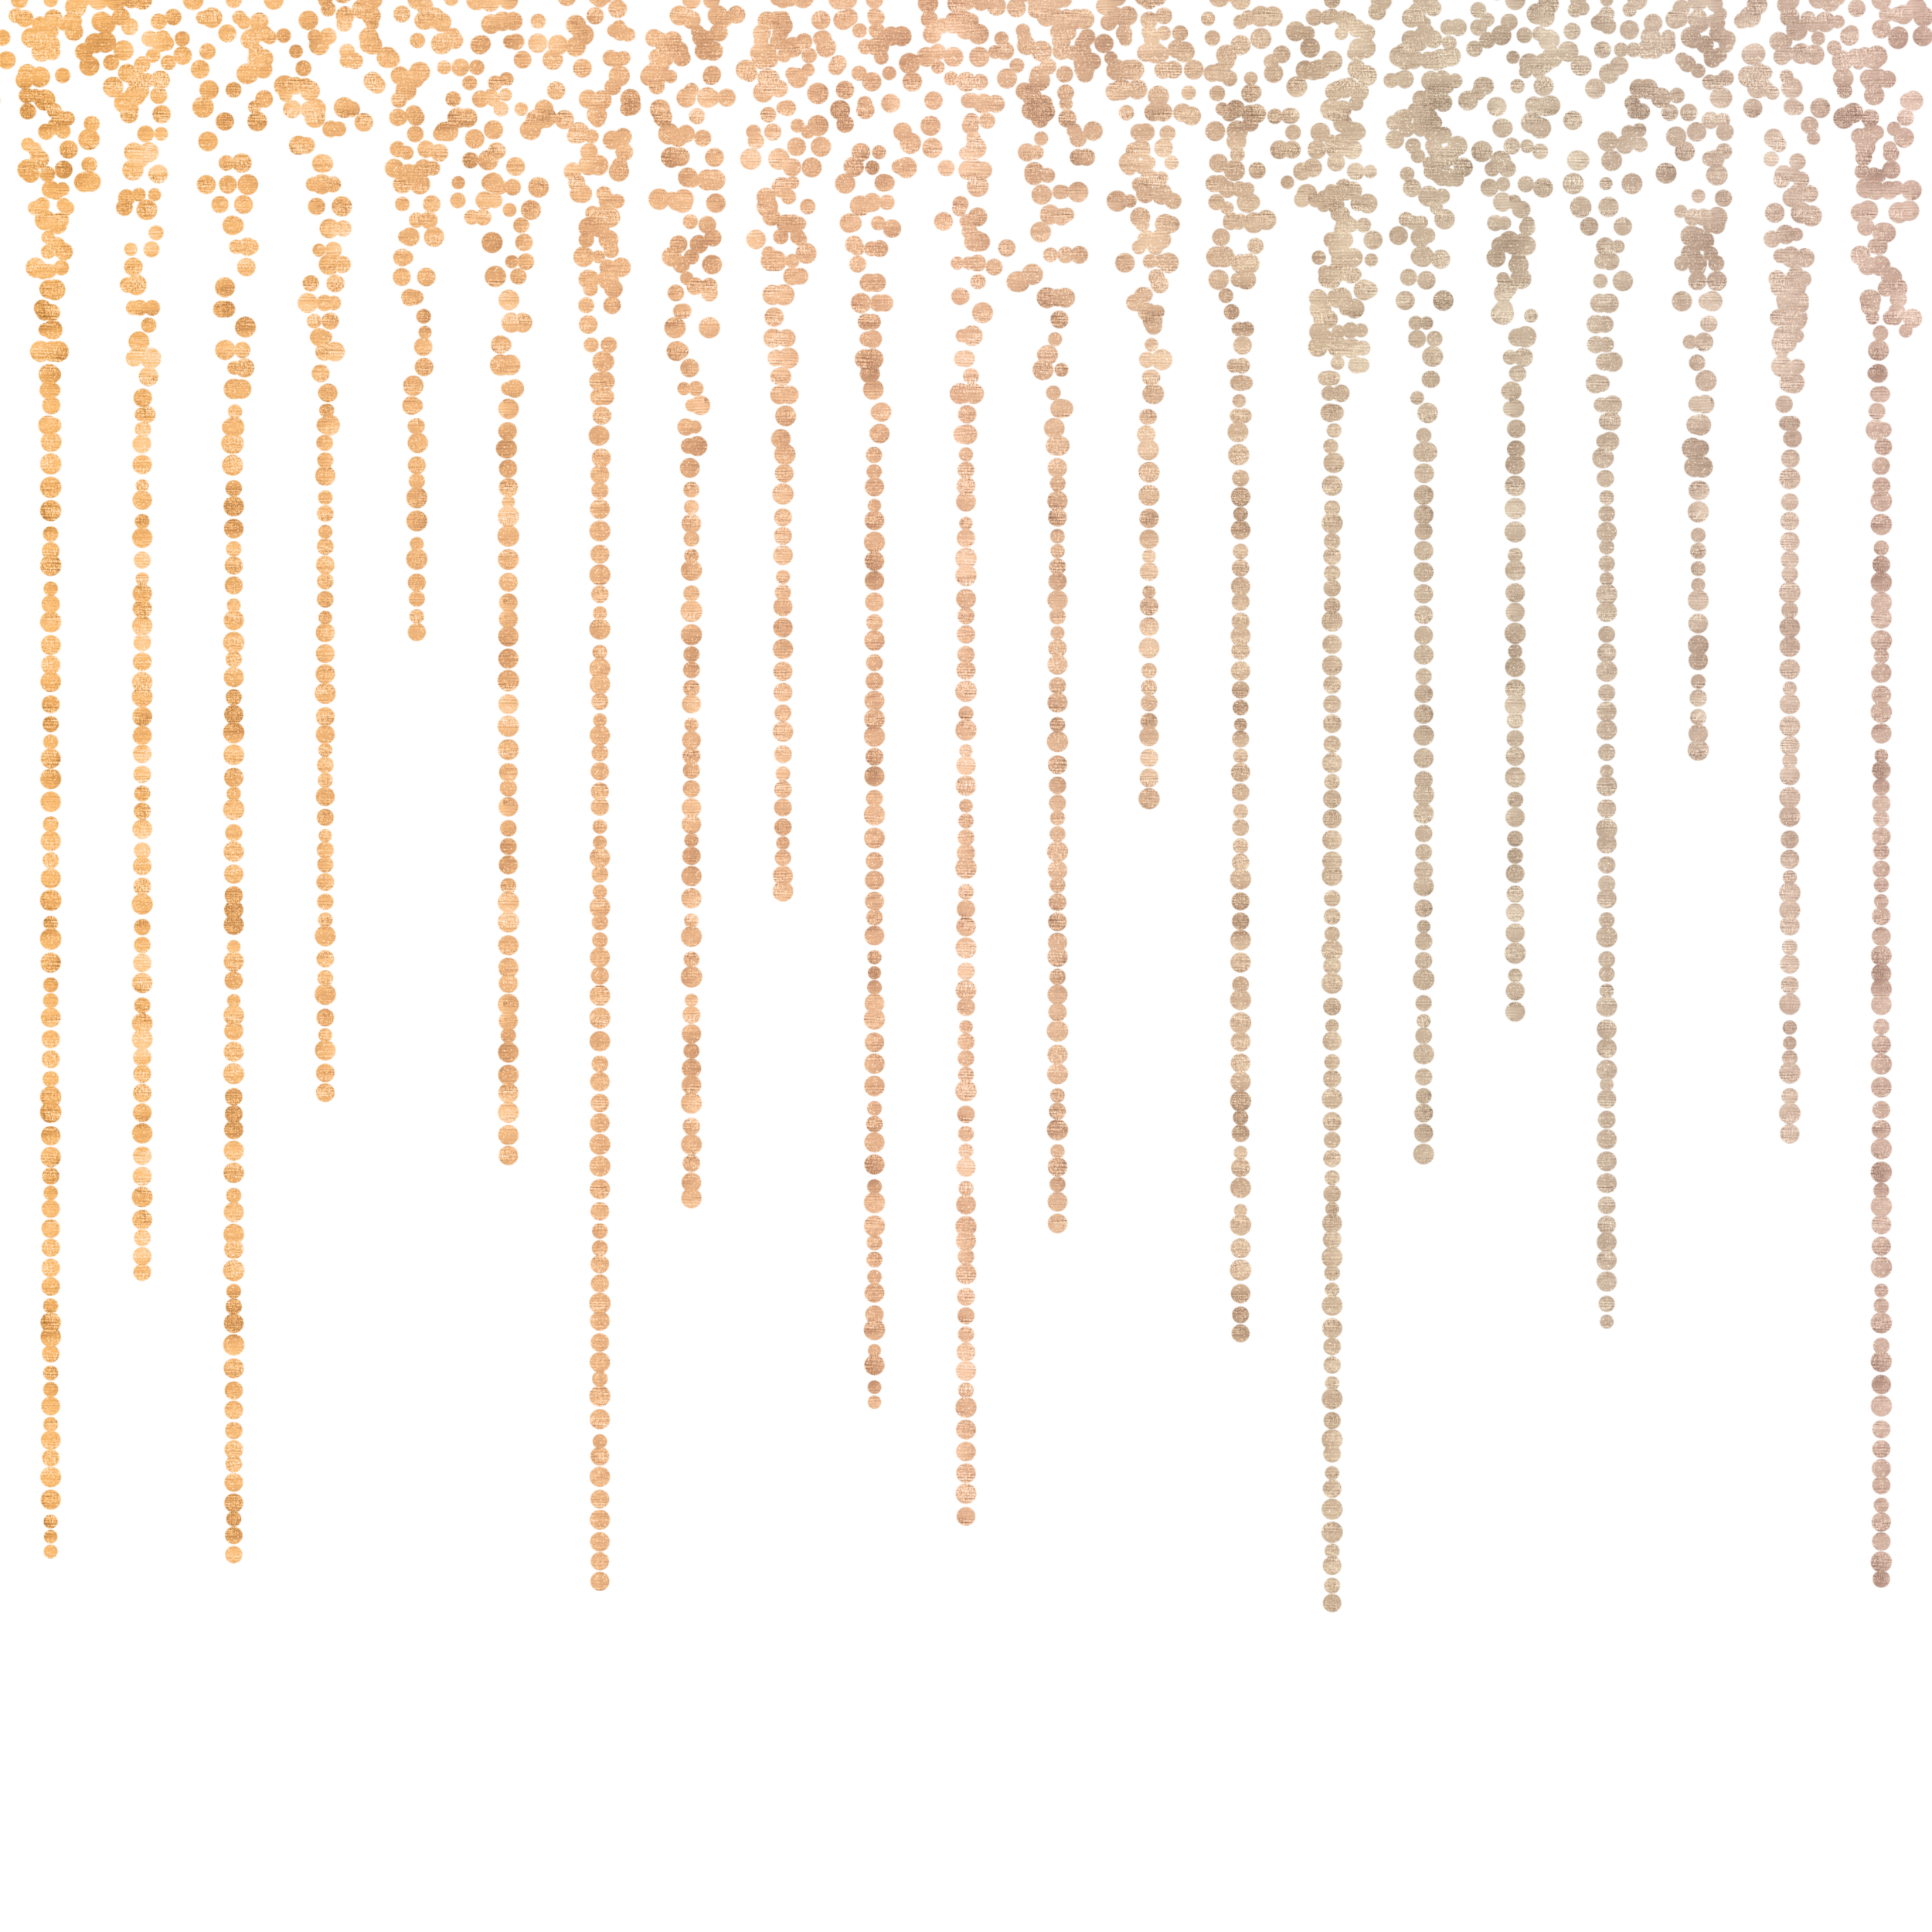 Pattern Fairy Lights (on white).png